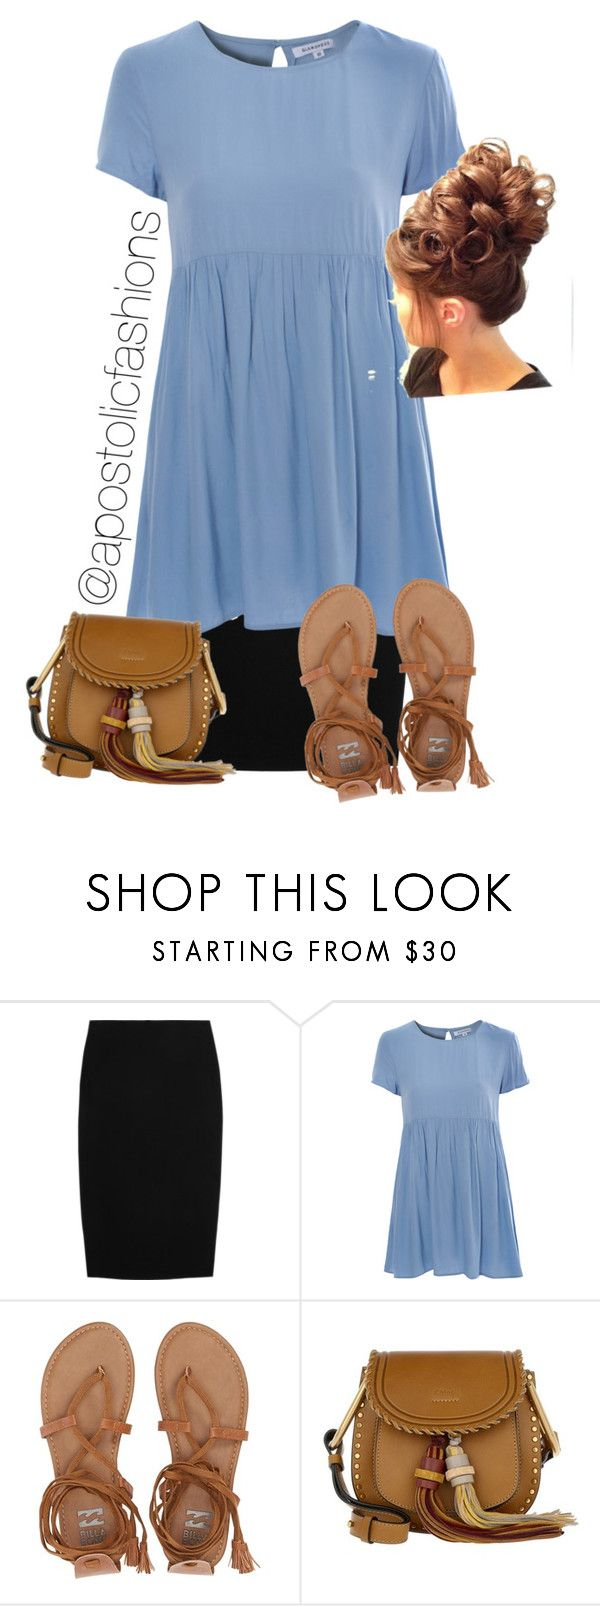 """""""Apostolic Fashions #1709"""" by apostolicfashions ❤ liked on Polyvore featuring Alexander McQueen, Glamorous, Billabong and Chloé"""